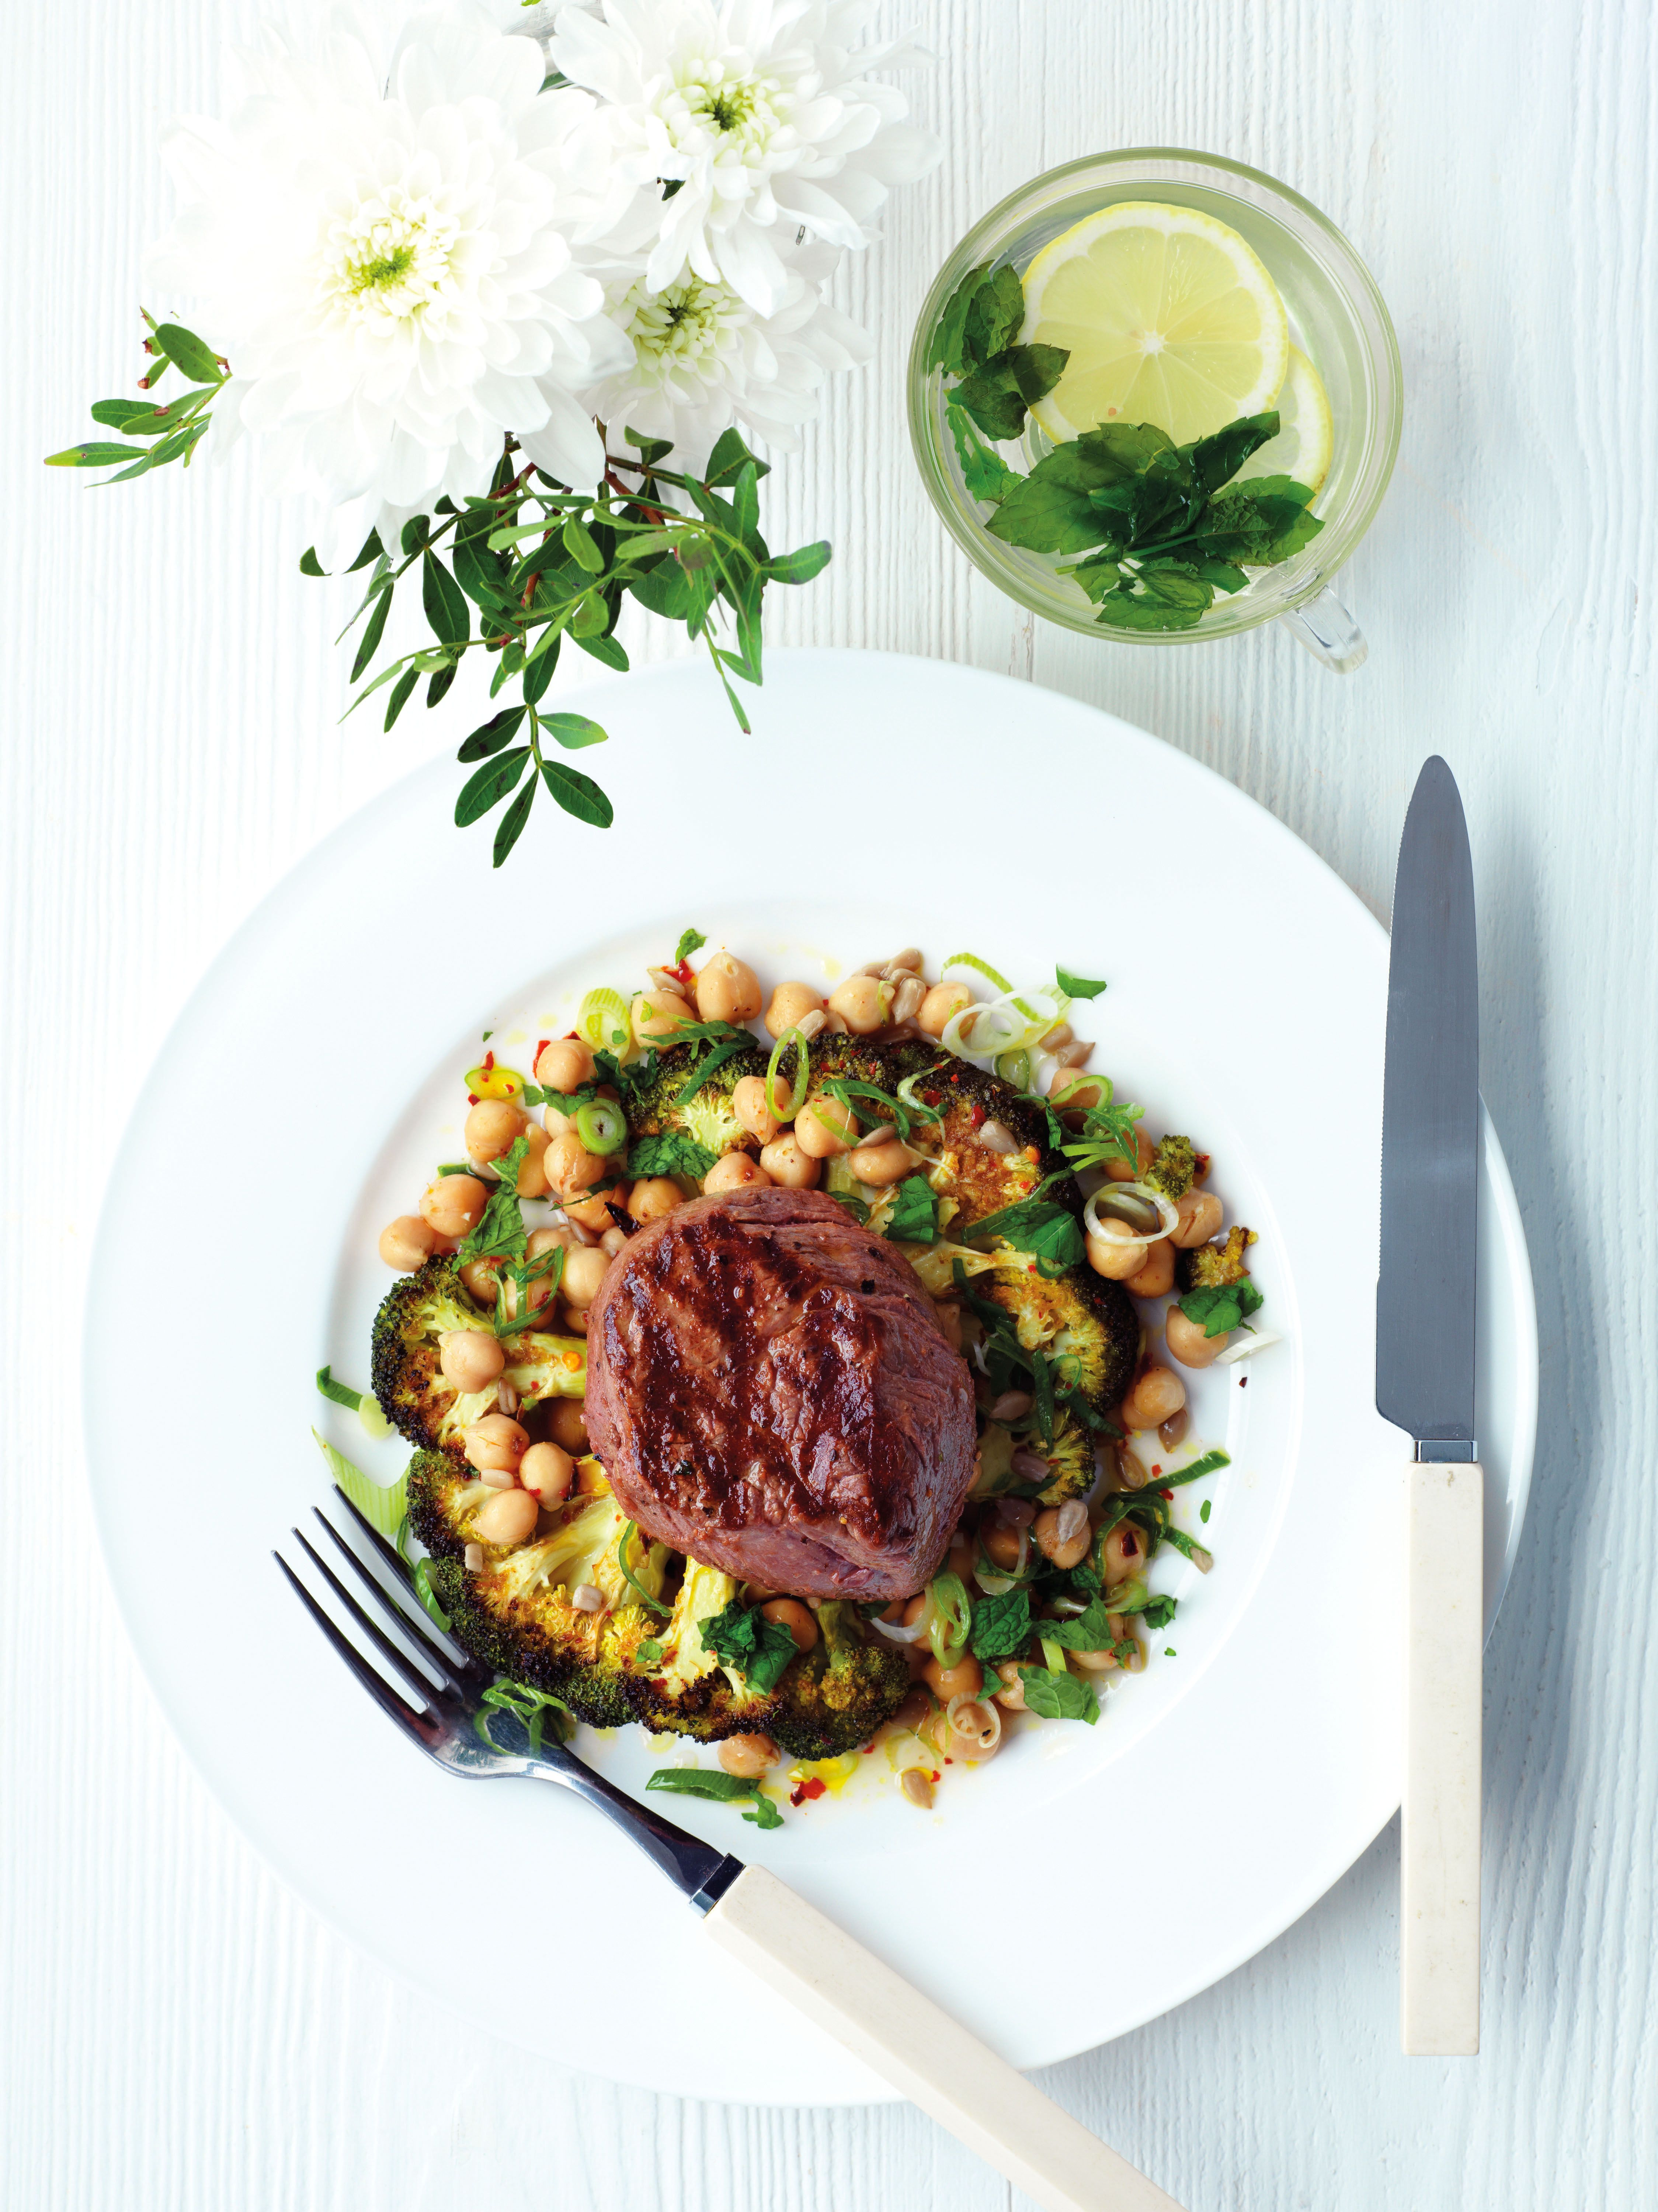 Over the last week I've been delighted to be working with Simply Beef and Lamb to share delicious recipes that are not only tasty but are also healthy and quick and easy to make.You can find the first recipe I posted for a deliciousAromatic Steak Salad with Freekeh and Chimichurri here, and the second recipe...